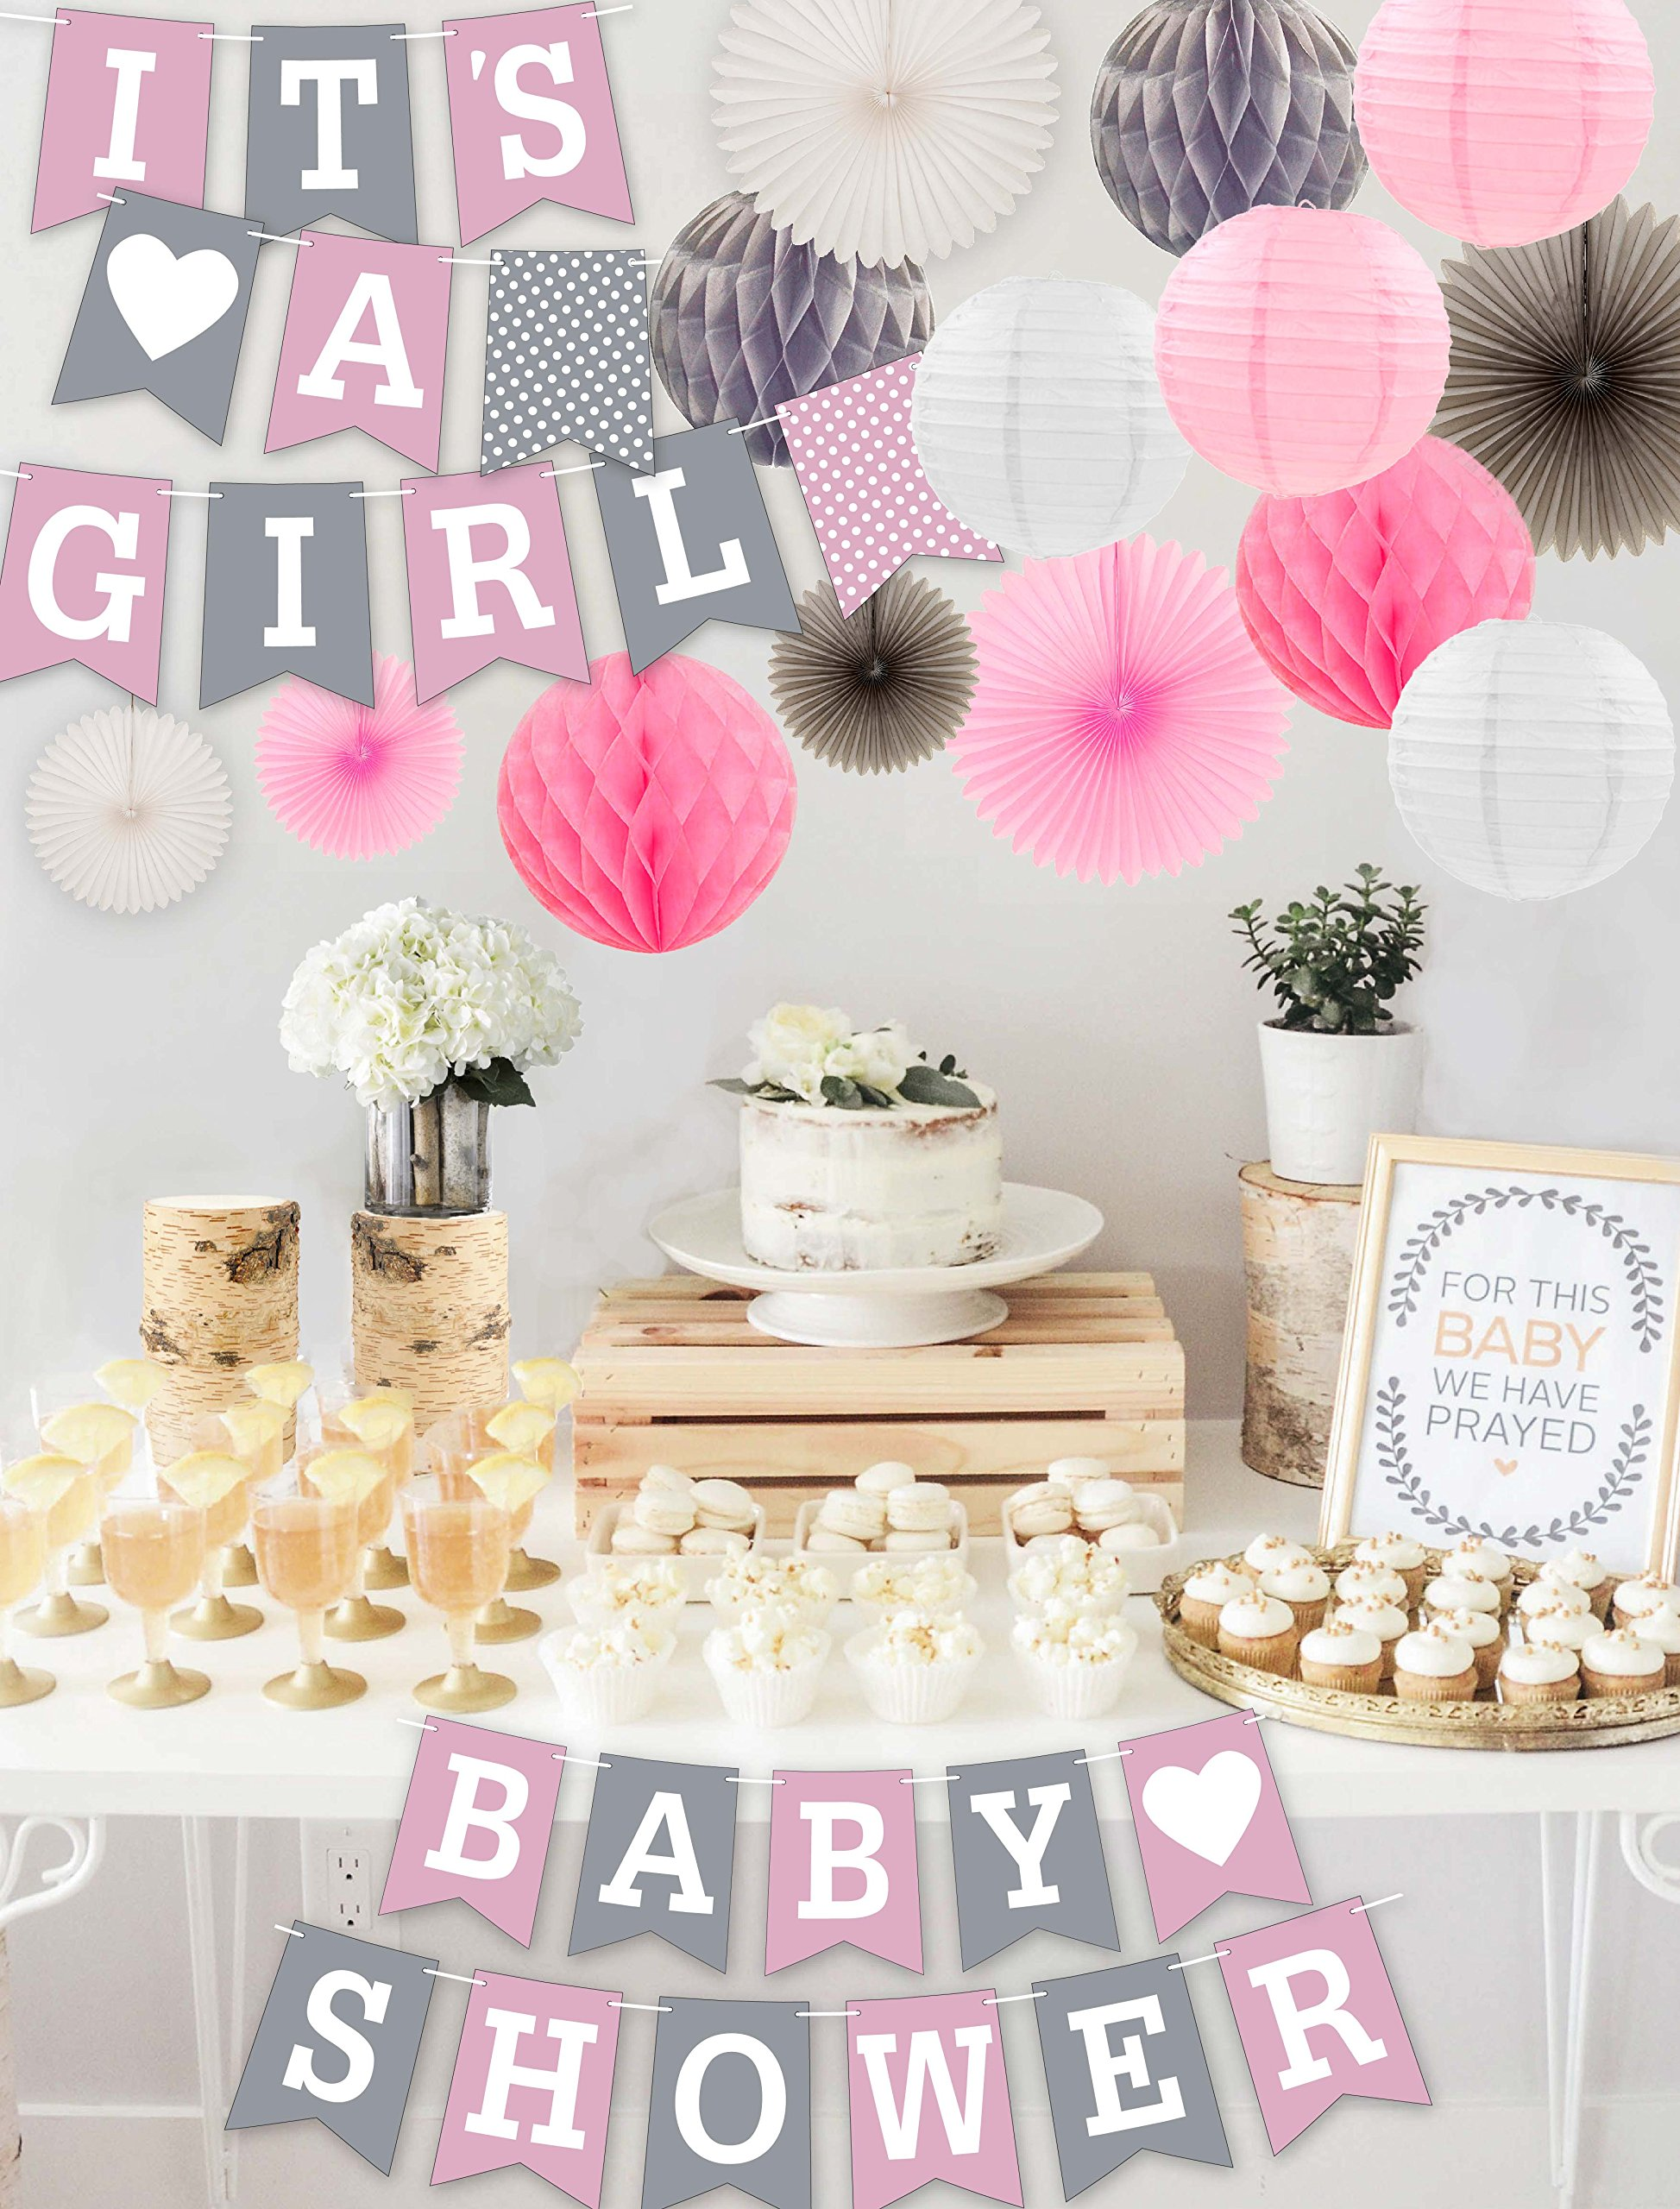 RainMeadow Premium Baby Shower Decorations for Girls Kit | It's A Girl | Garland Bunting Banner, Paper Lanterns, Honeycomb Balls | Tissue Paper Fans | Pink Grey White | Elephant Style